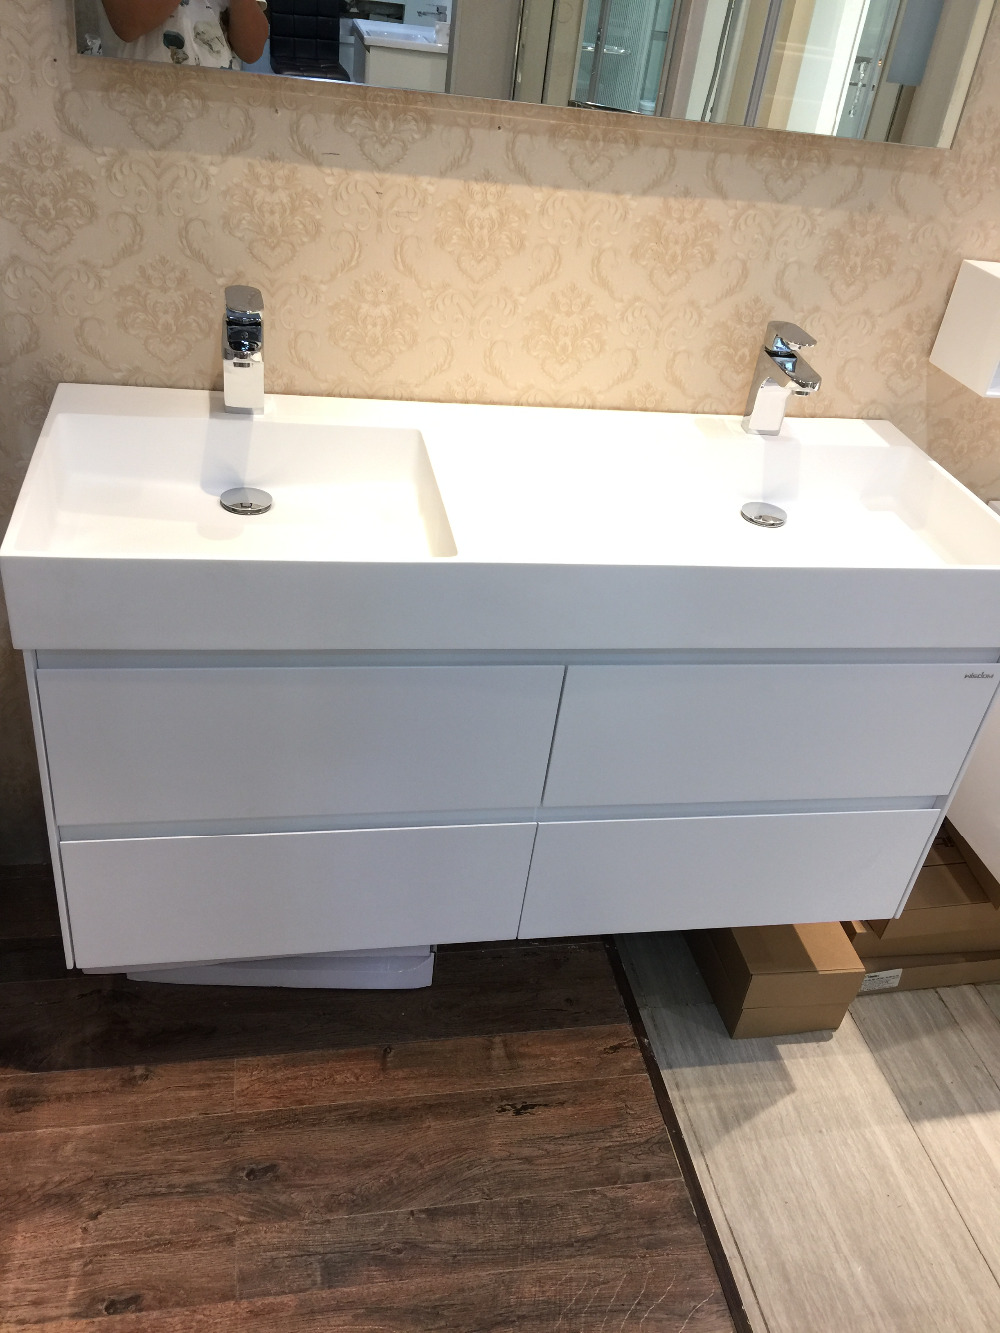 1200mm Wall Mounted Solid Surface Stone Double Basin With Soild Wooden Bathroom Vanity Cloakroom Cabinet Oka furniture